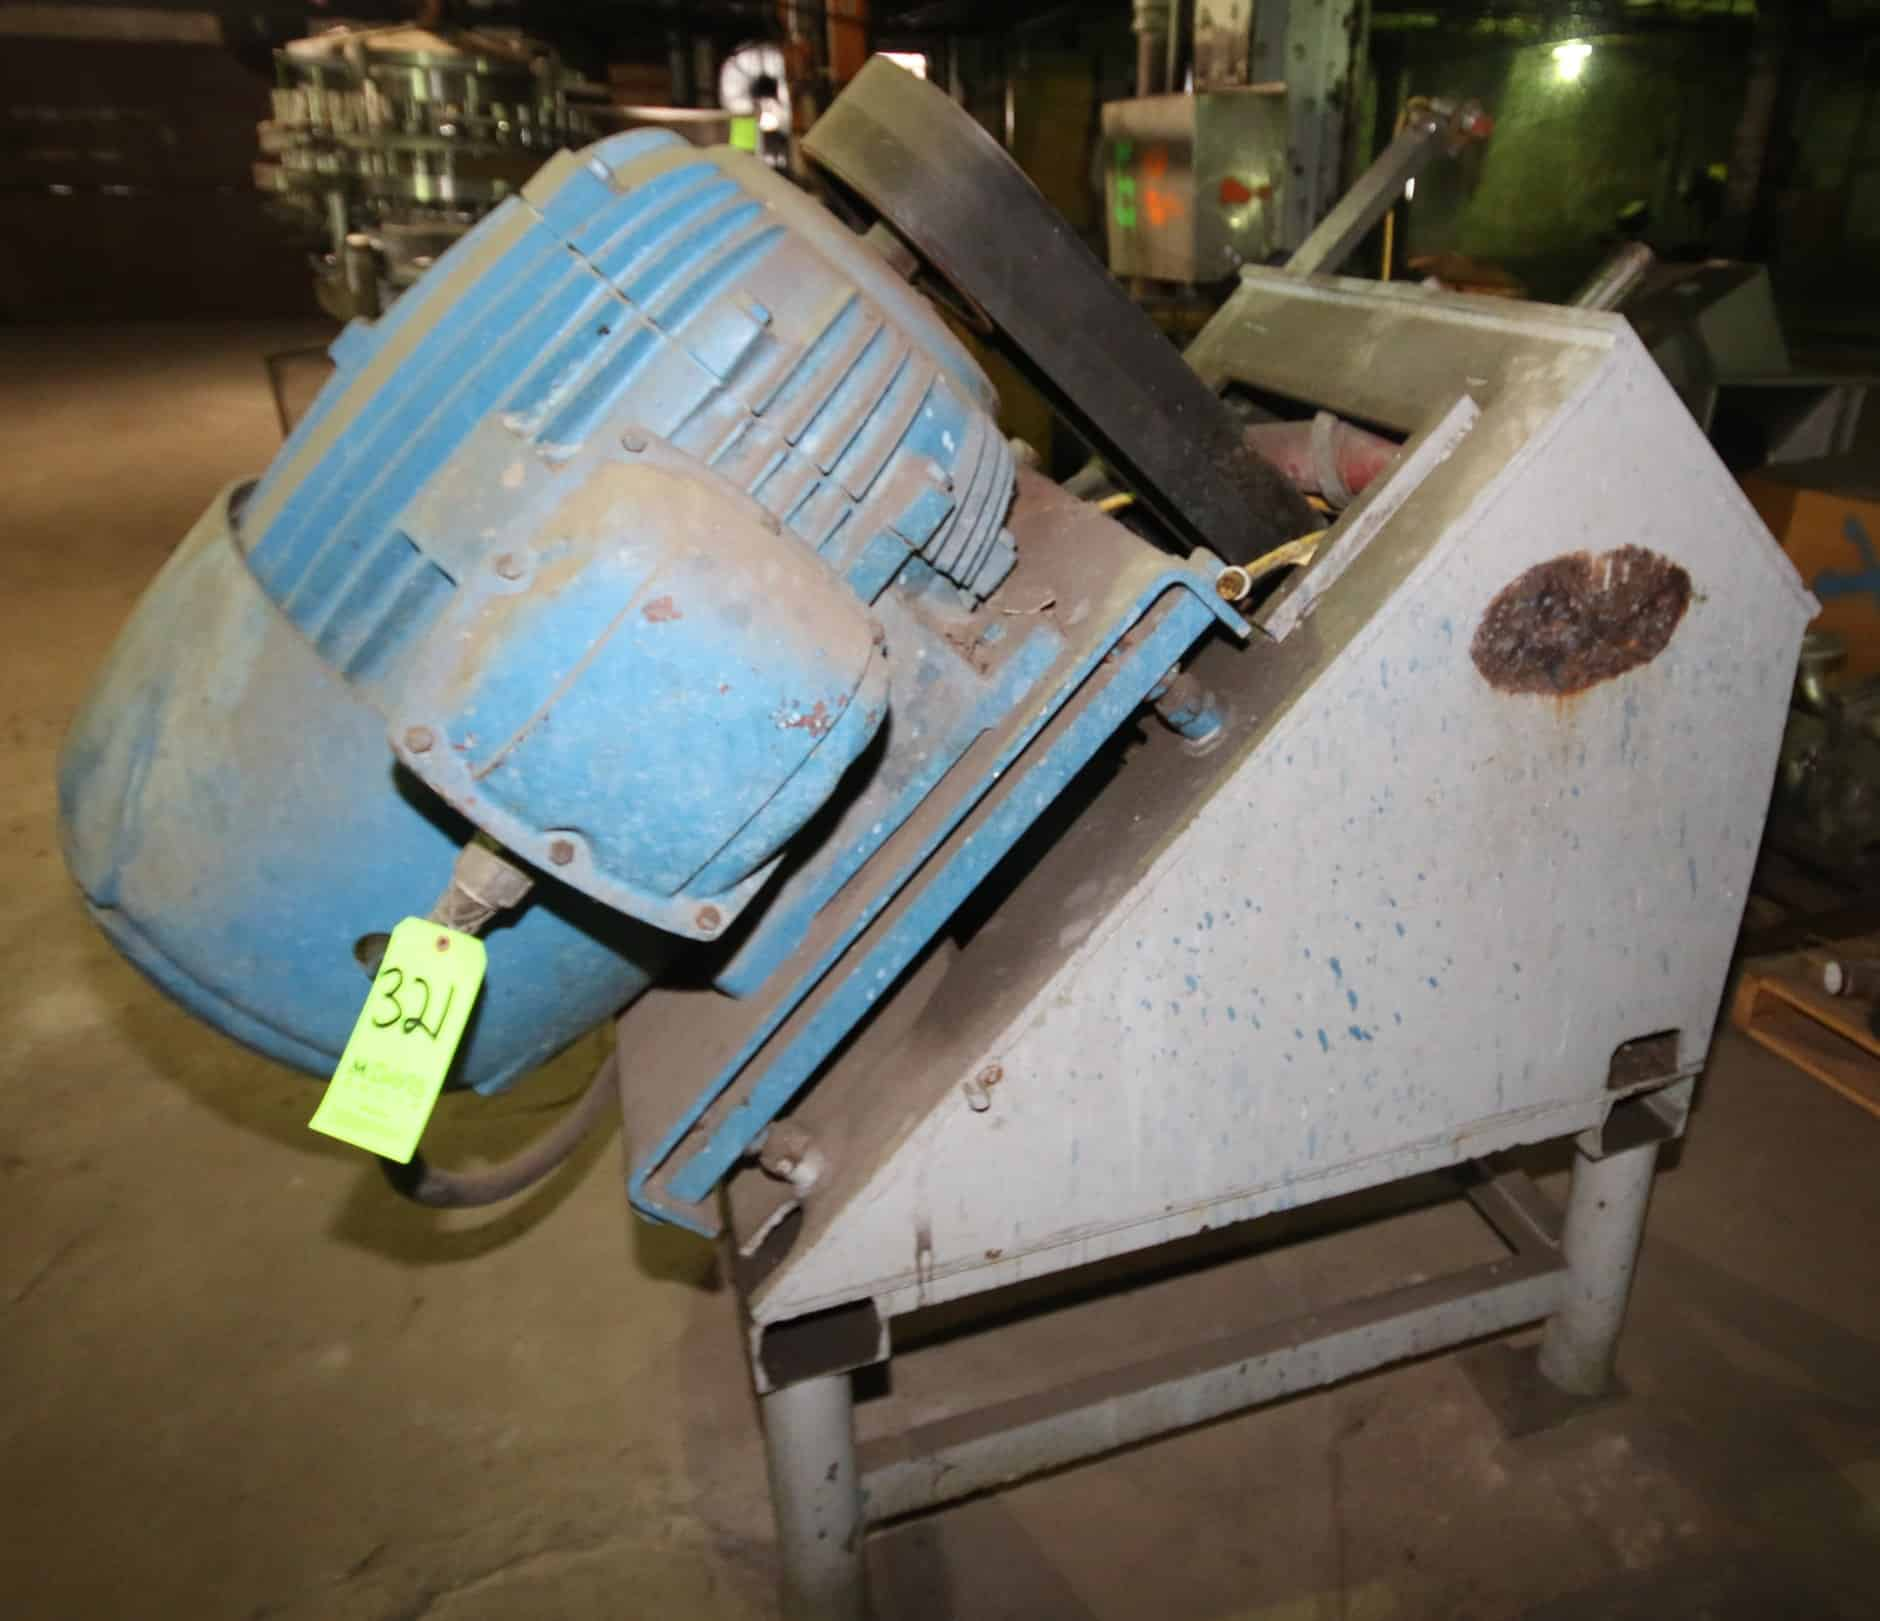 (2) Reitz Disintegrator Frames, Model RA-3-12-K122 &  RA-3-K322, with 75 hp & 50 hp Motors